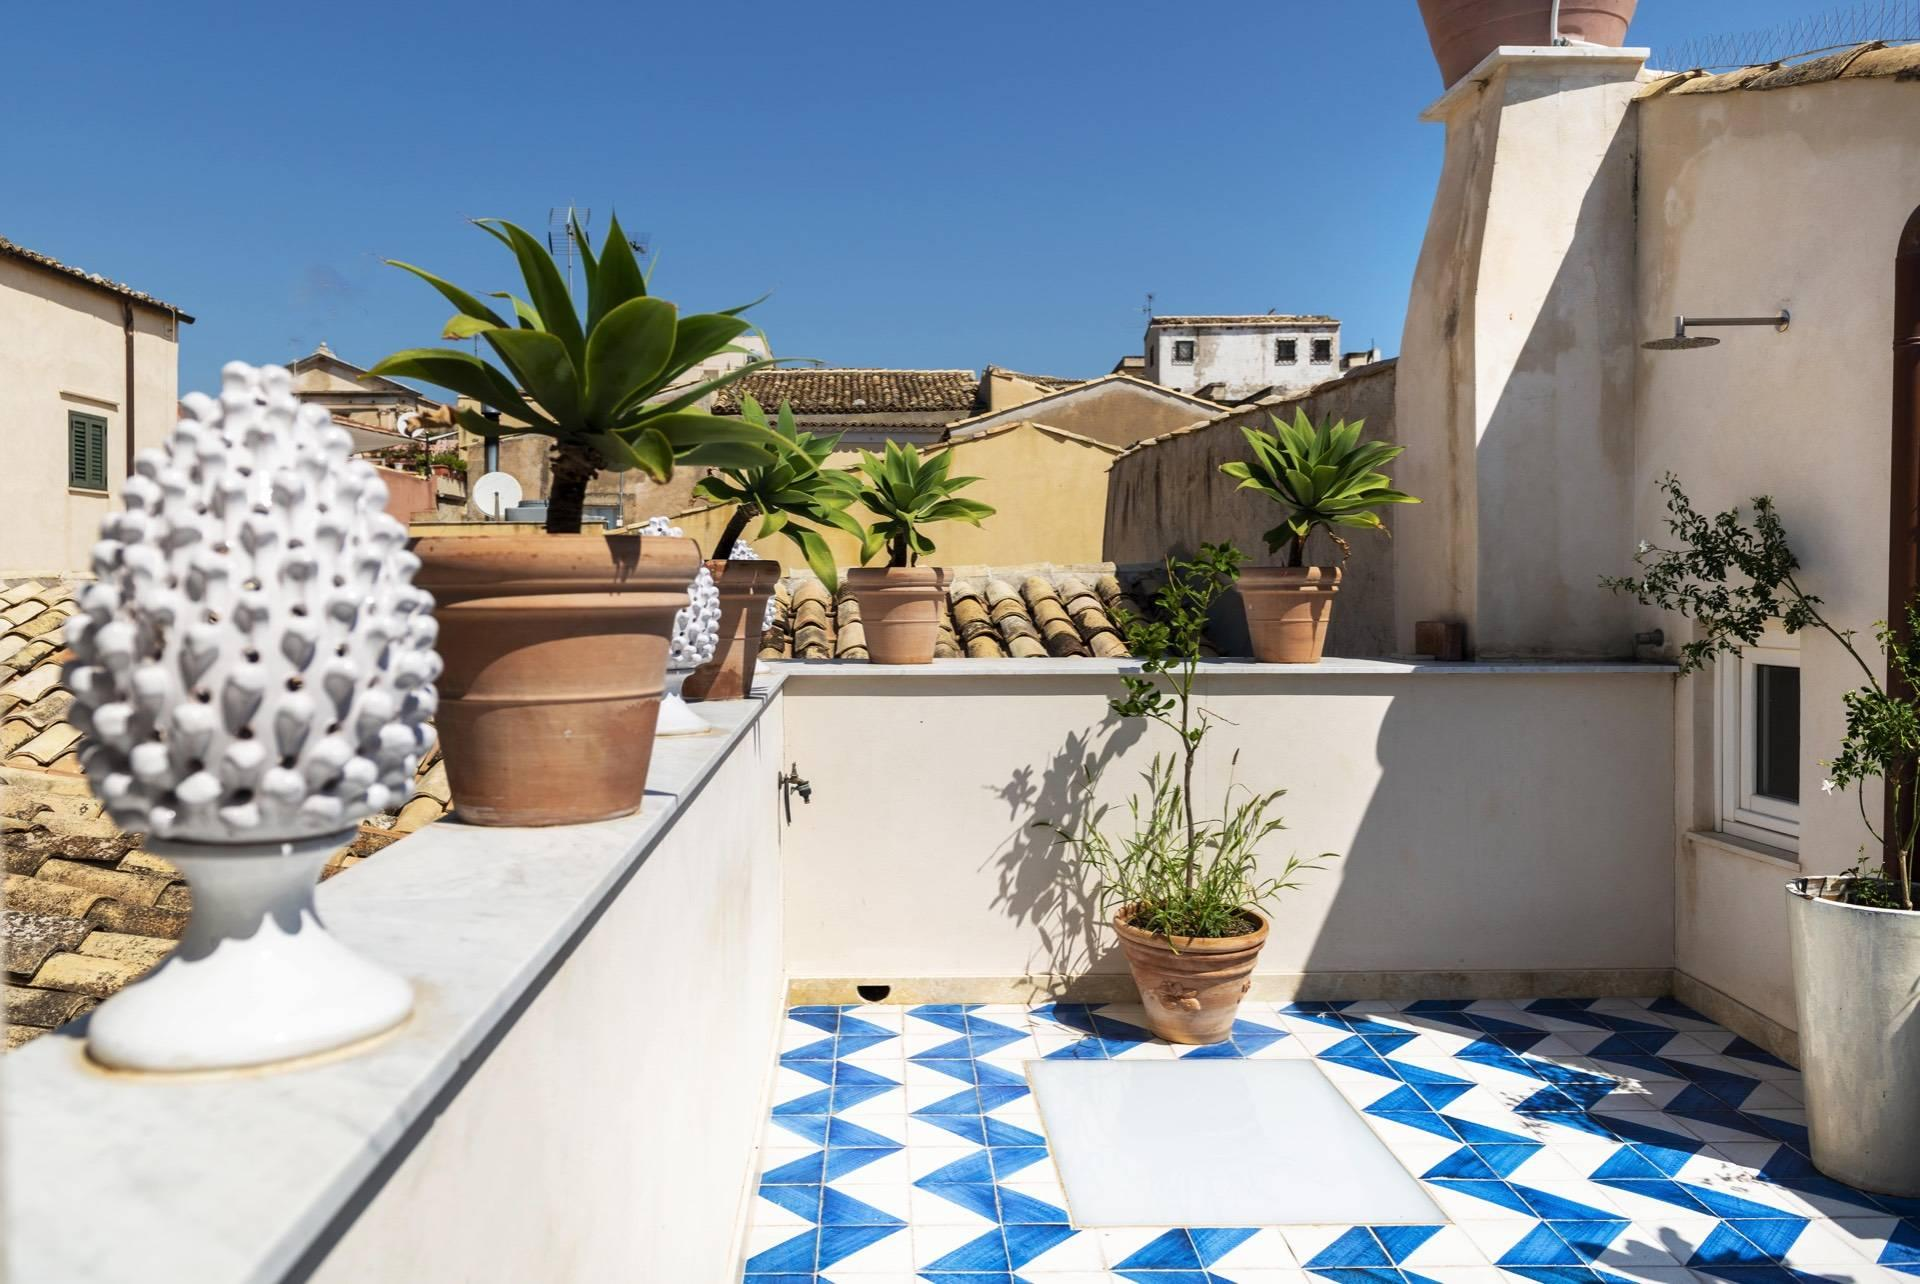 Apartment with terrace in the heart of Noto. - 13